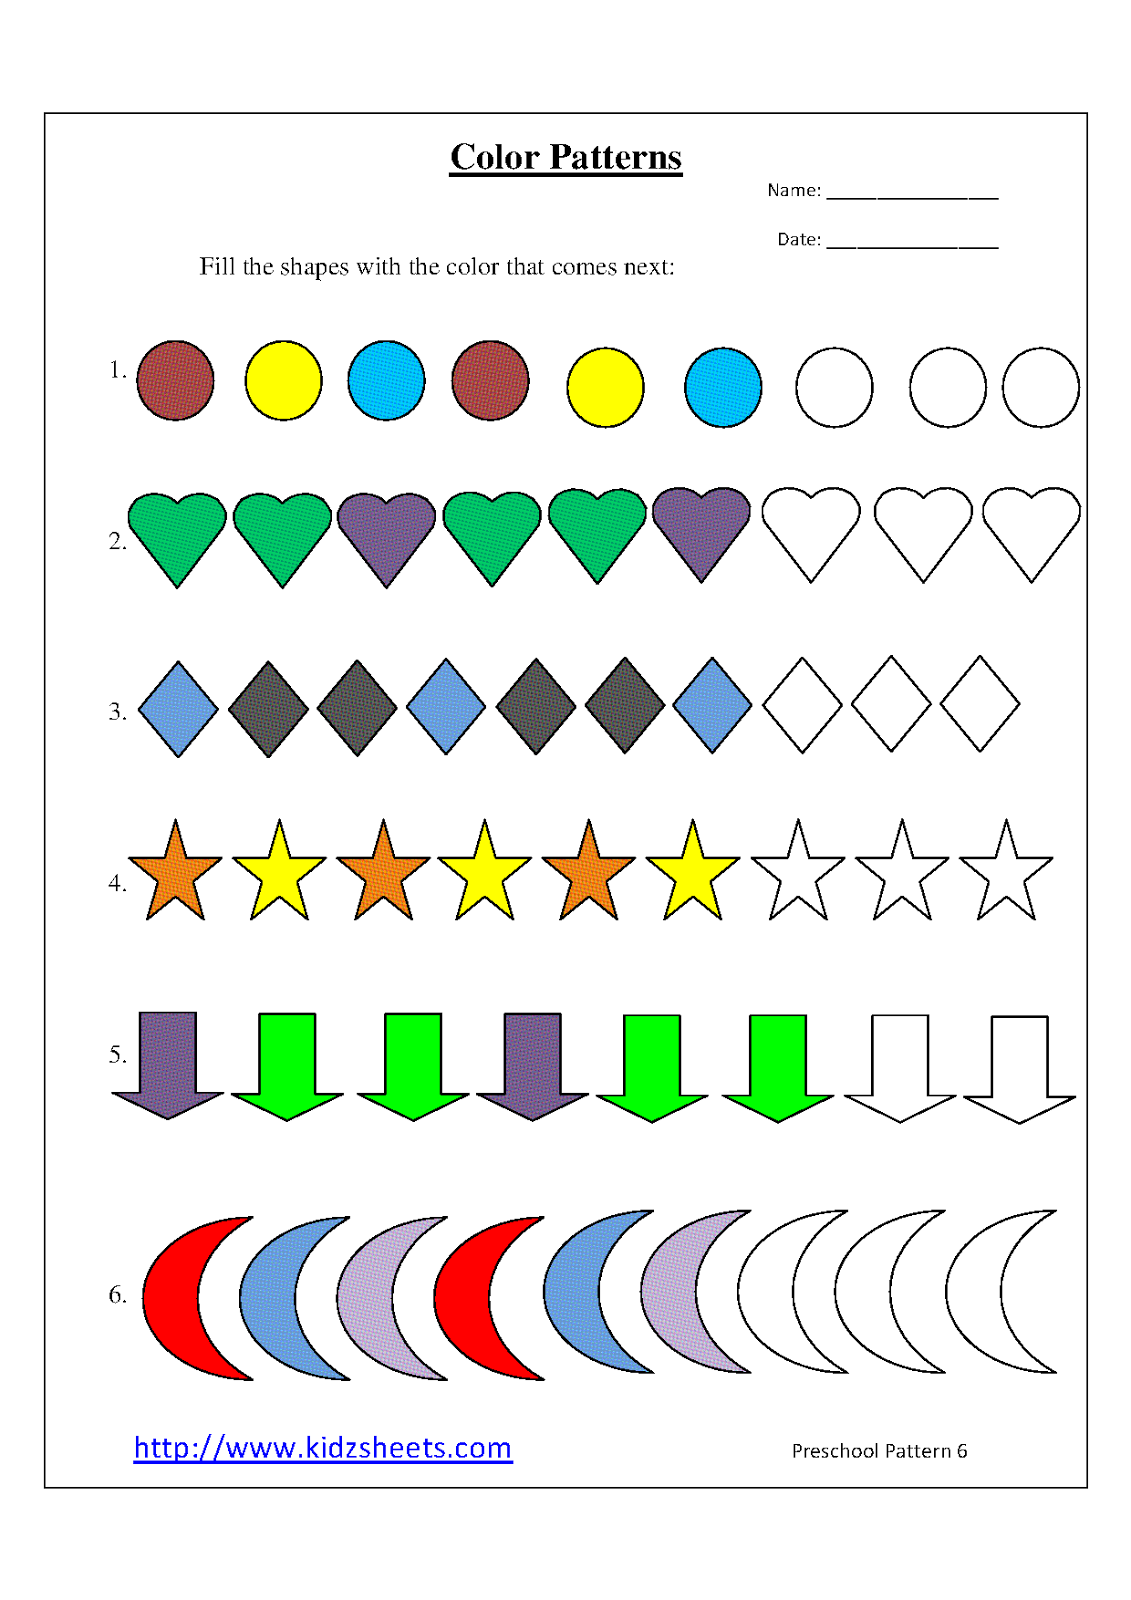 math worksheet : kidz worksheets preschool color patterns worksheet6 : Free Pattern Worksheets For Kindergarten